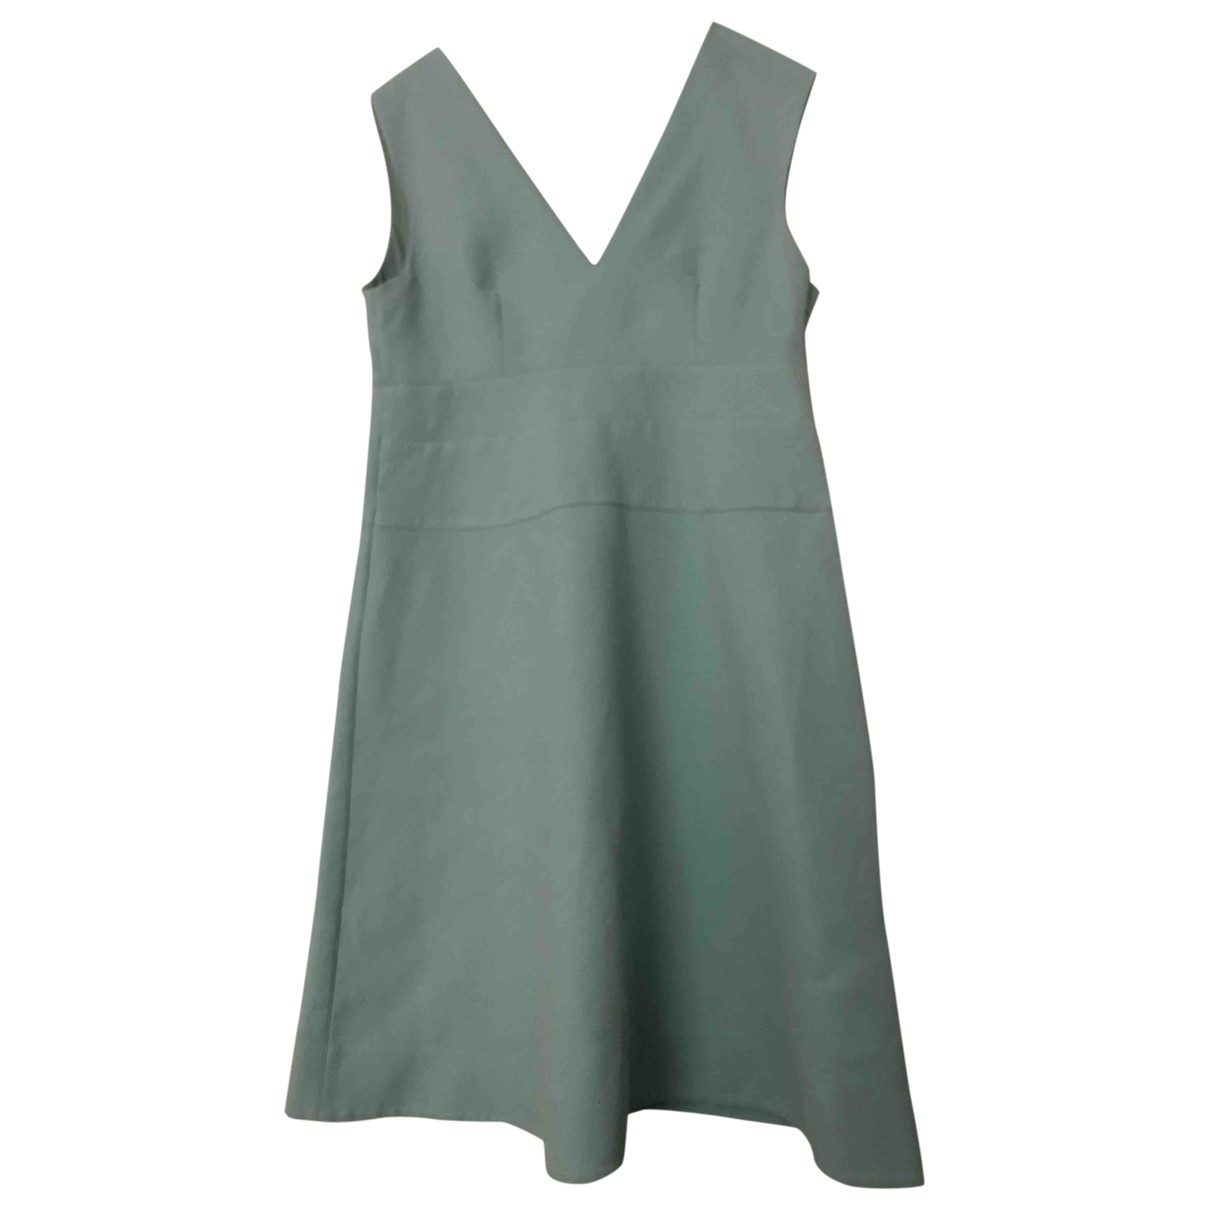 Marni \N Green Cotton dress for Women 46 IT